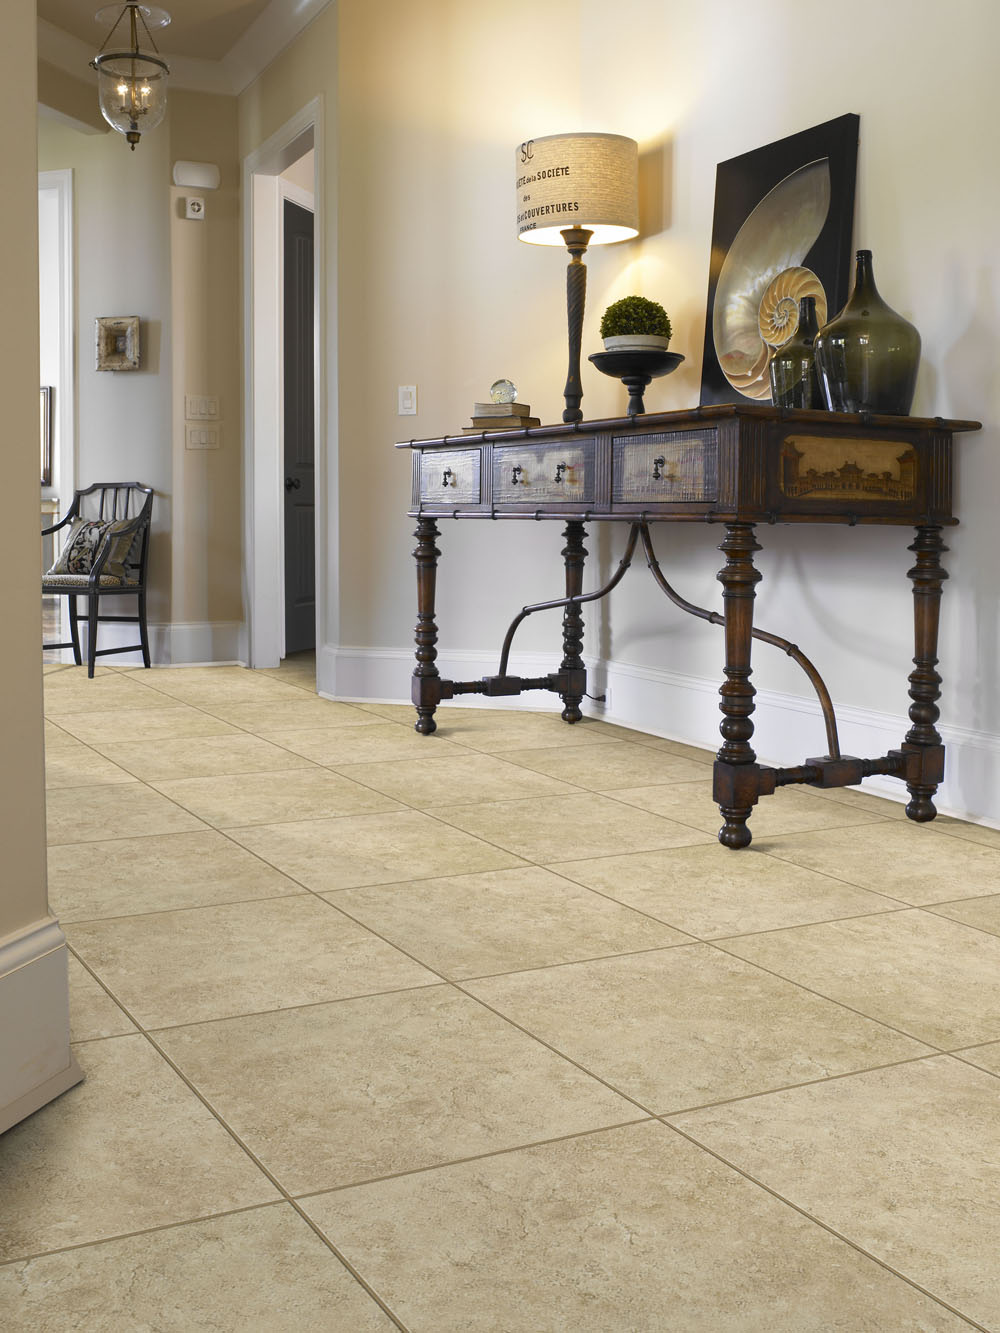 best flooring options tile flooring in entryway with front table and lamp RBQHWLZ